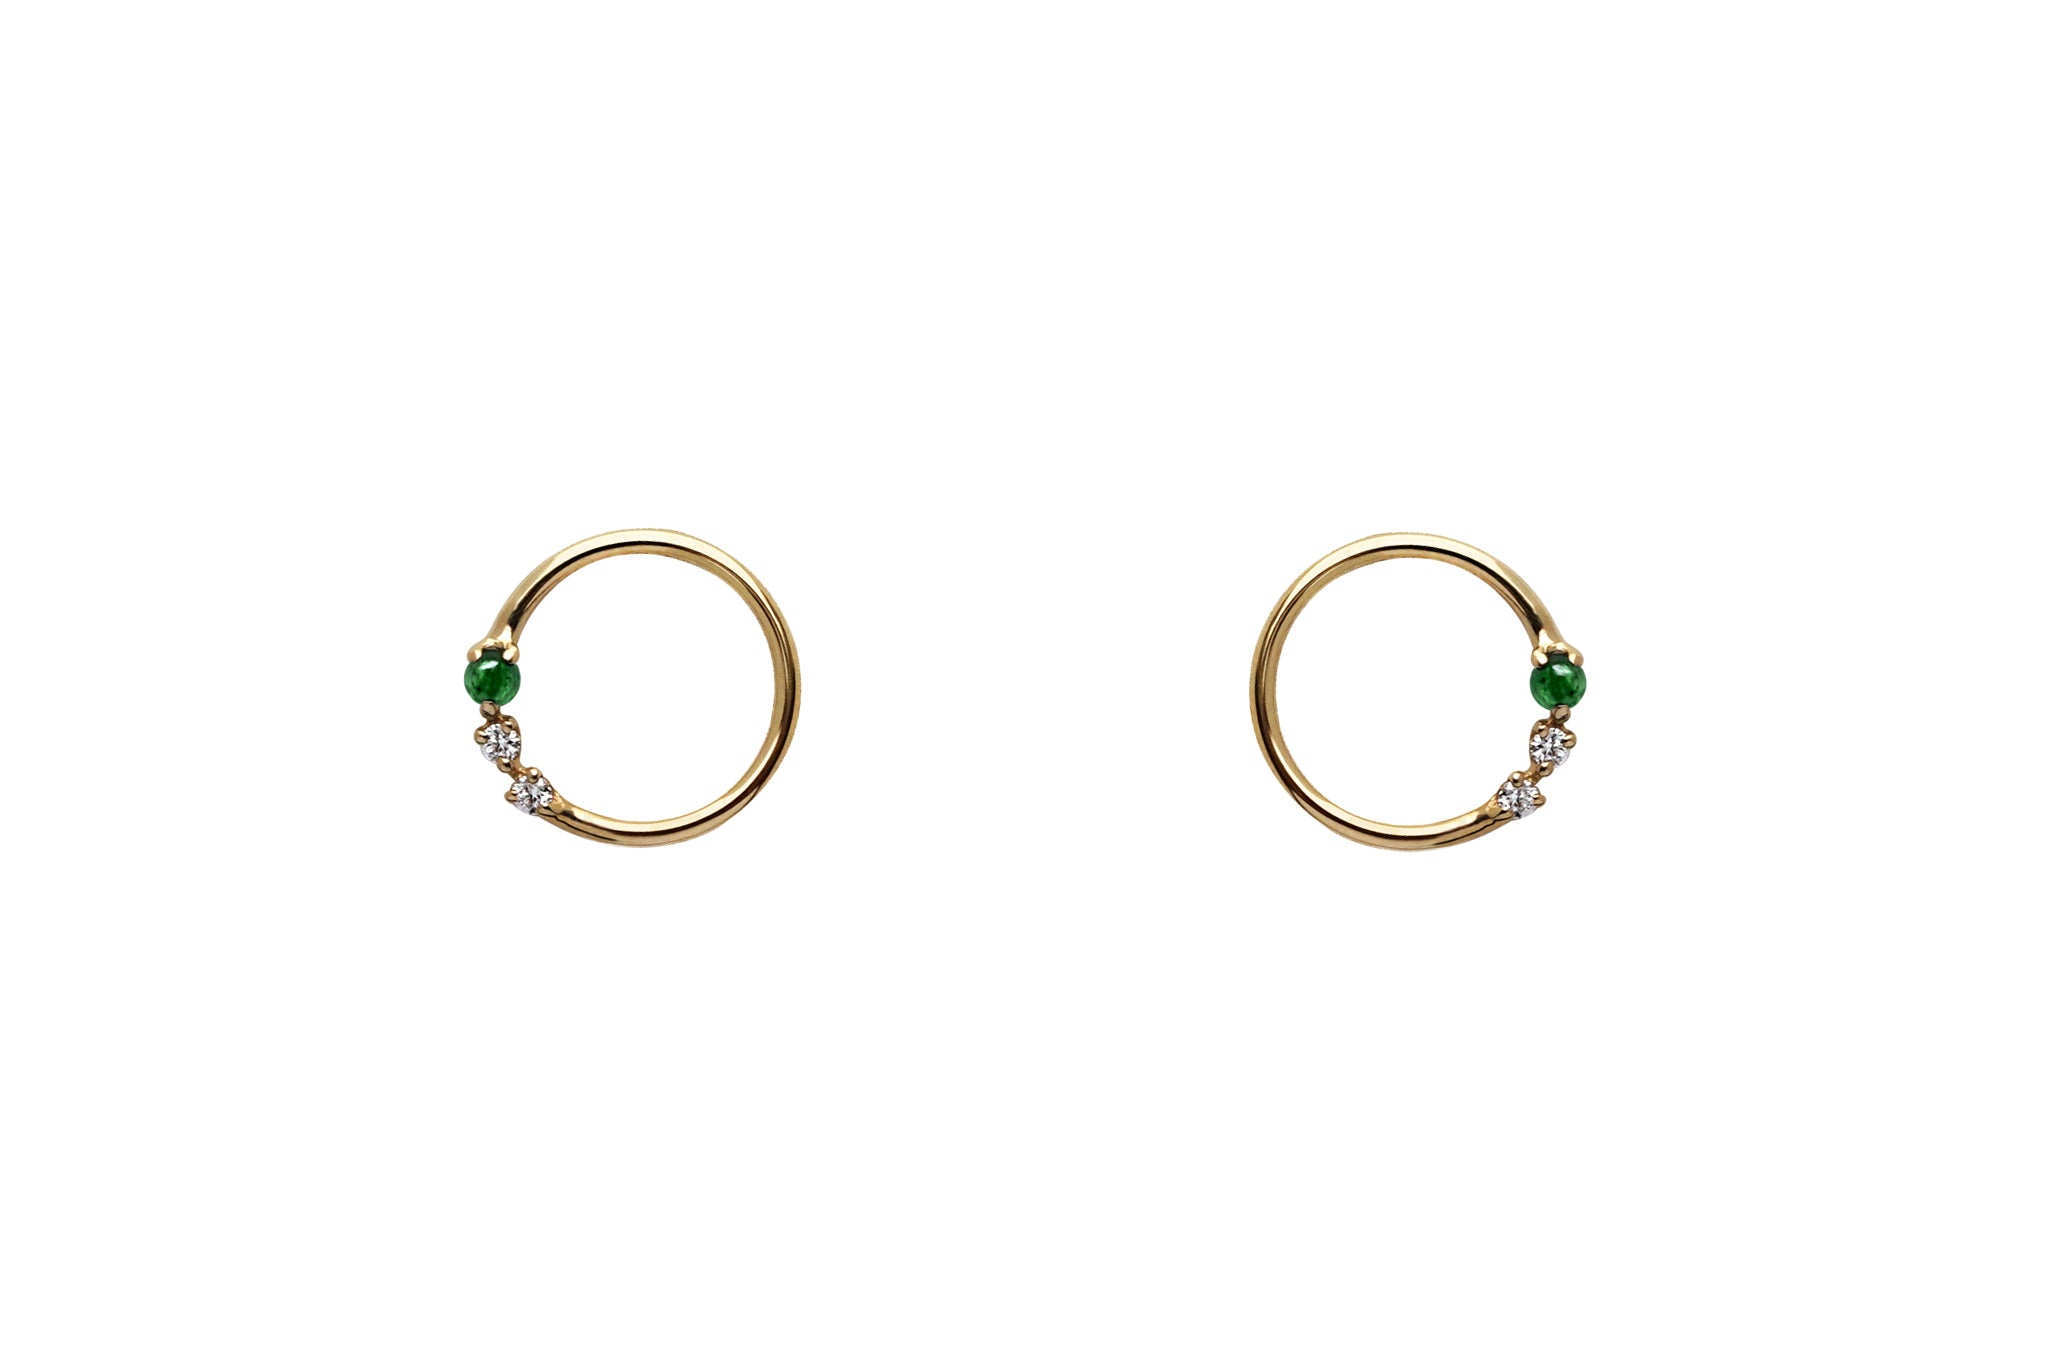 Emerald and Diamond Open Circle Earrings